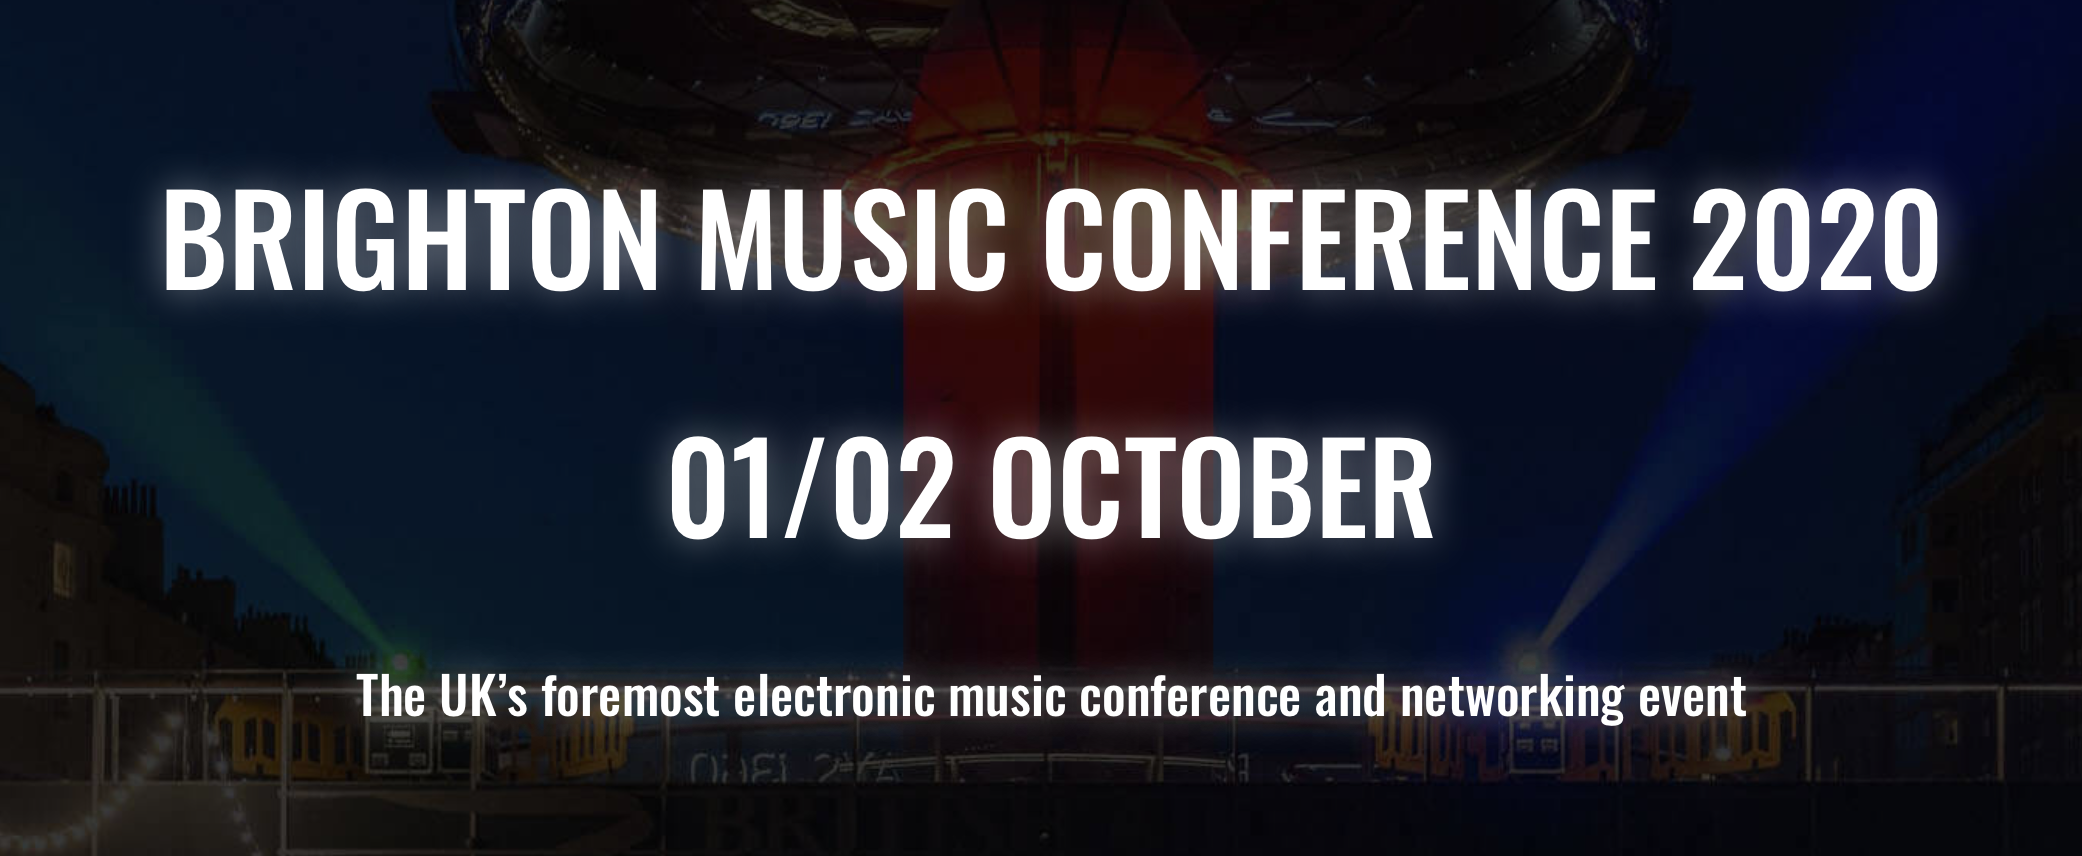 BRIGHTON MUSIC CONFERENCE ANNOUNCE FREE BMC20 VIRTUAL PASSES FOR ALL!